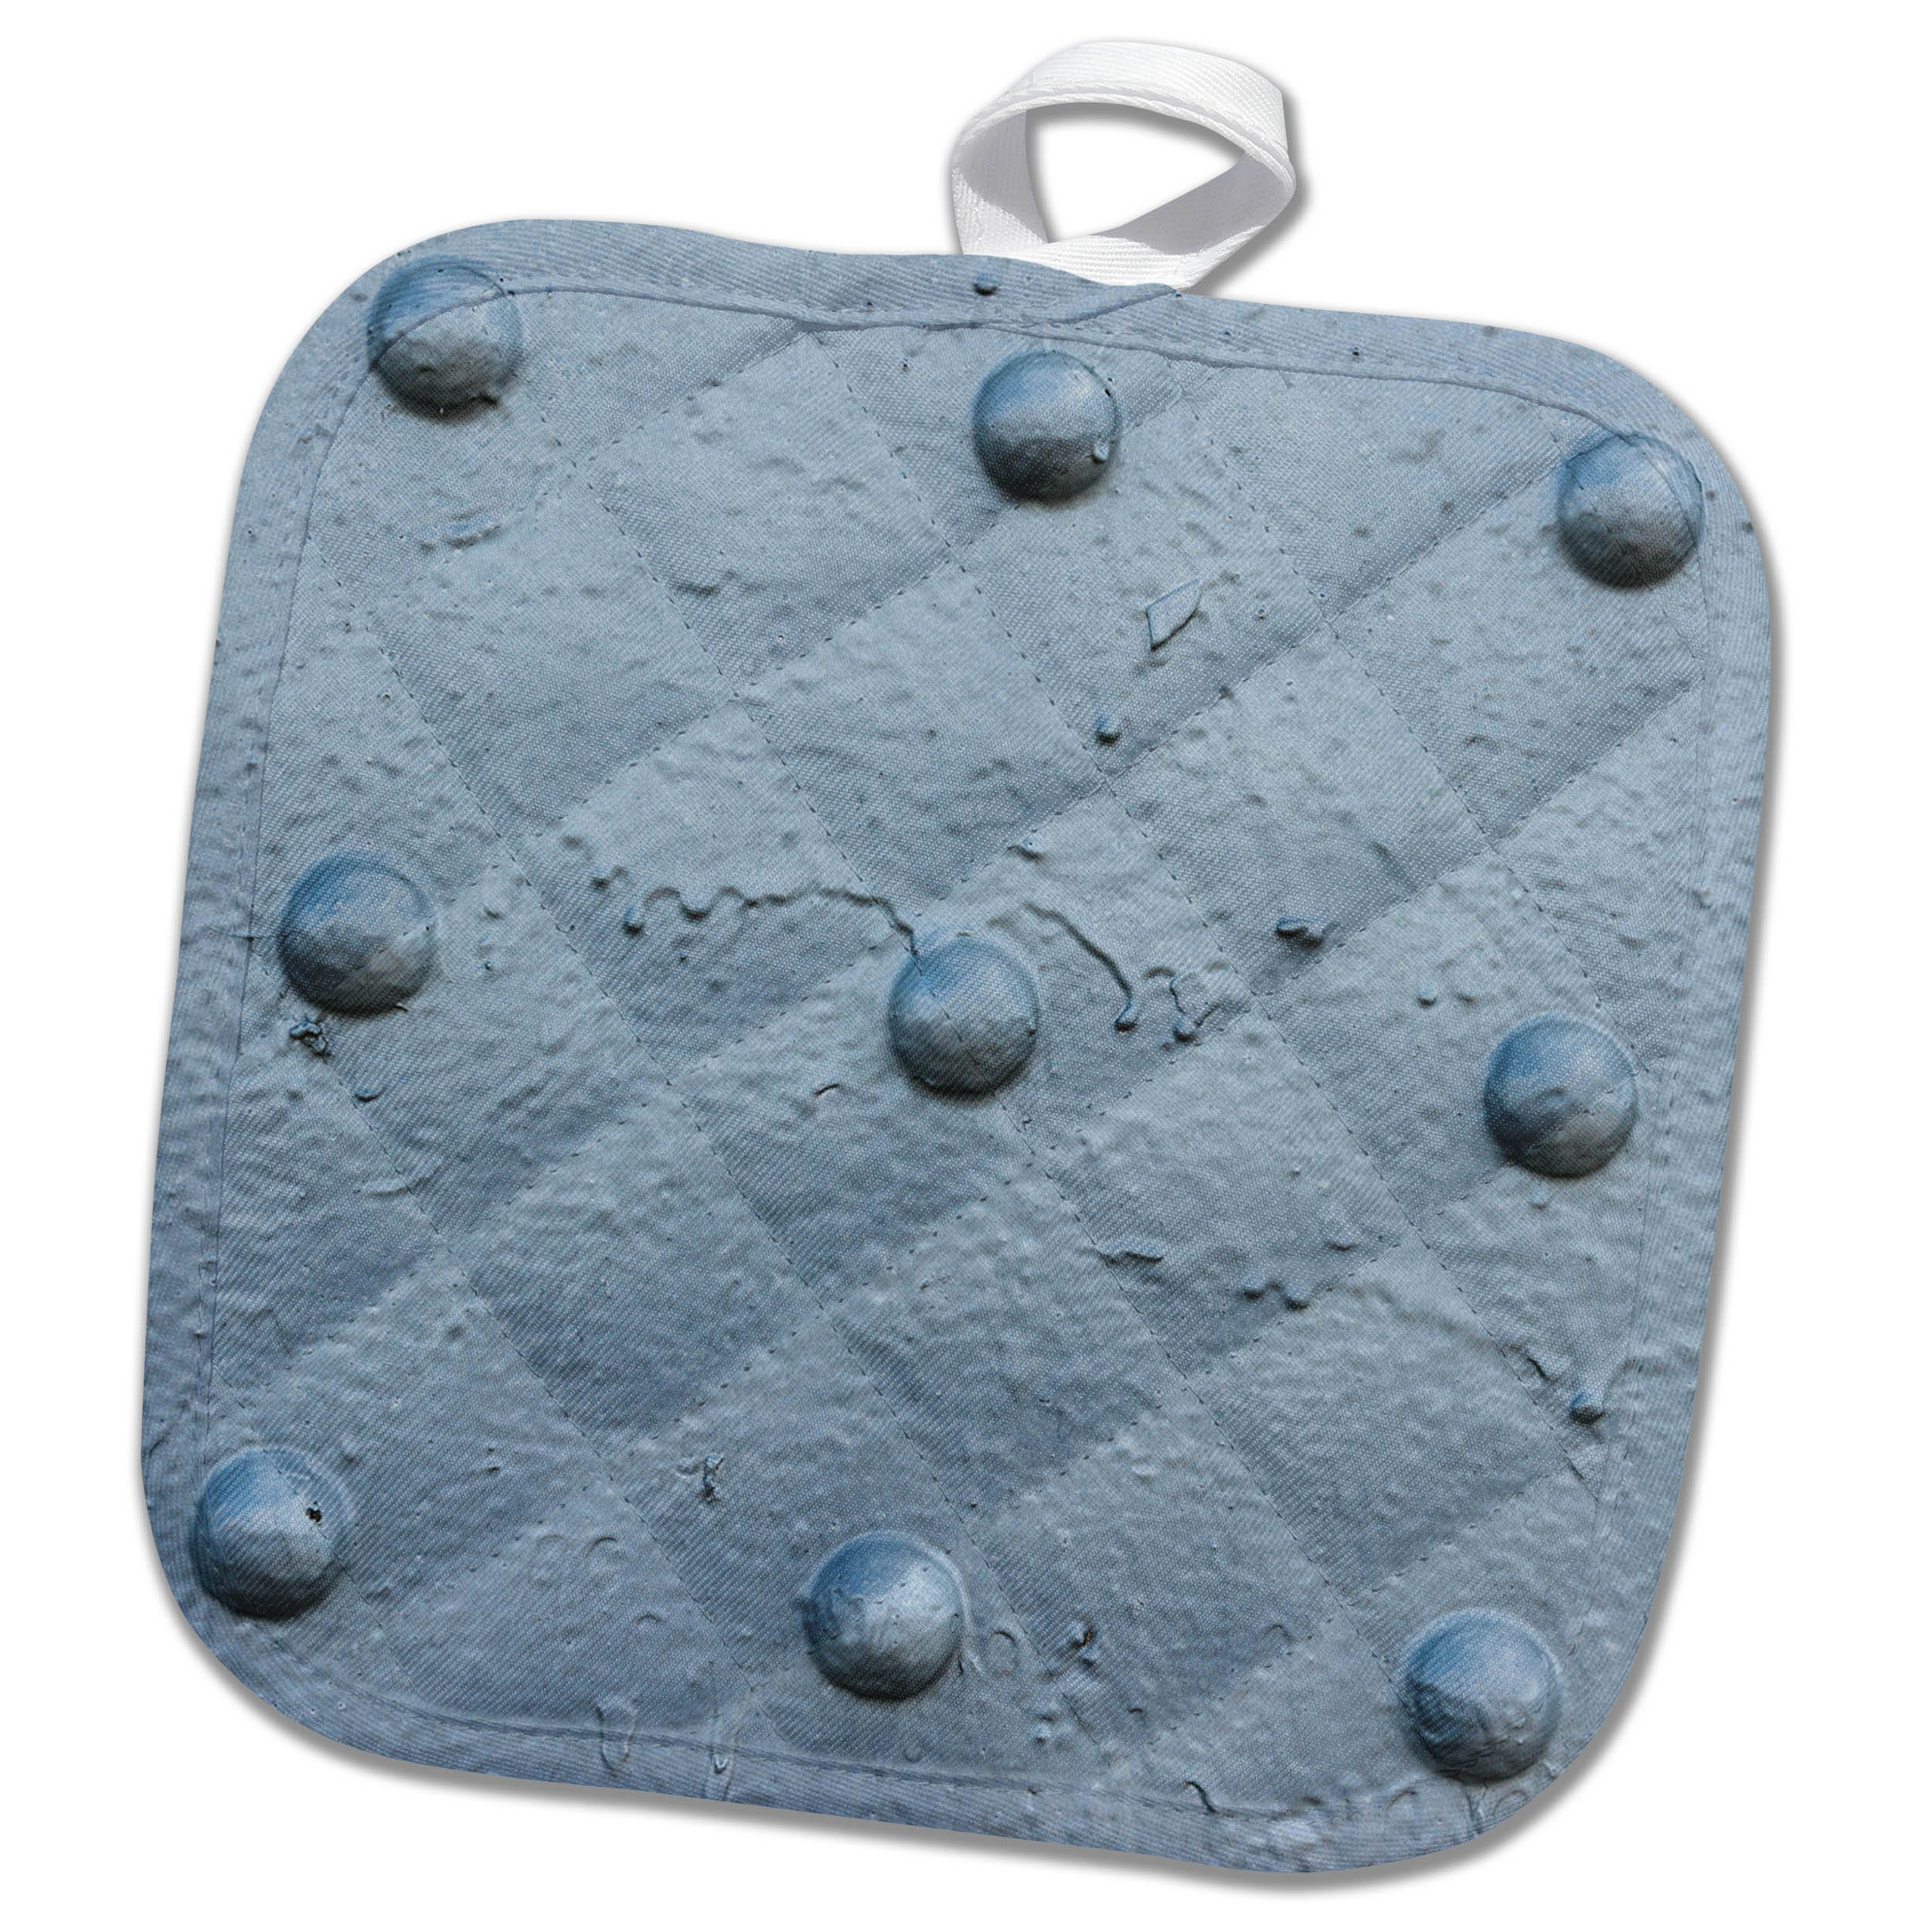 3dRose Alexis Photography - Texture Metal - Metal texture with six rivets painted gray - 8x8 Potholder (phl_271987_1)